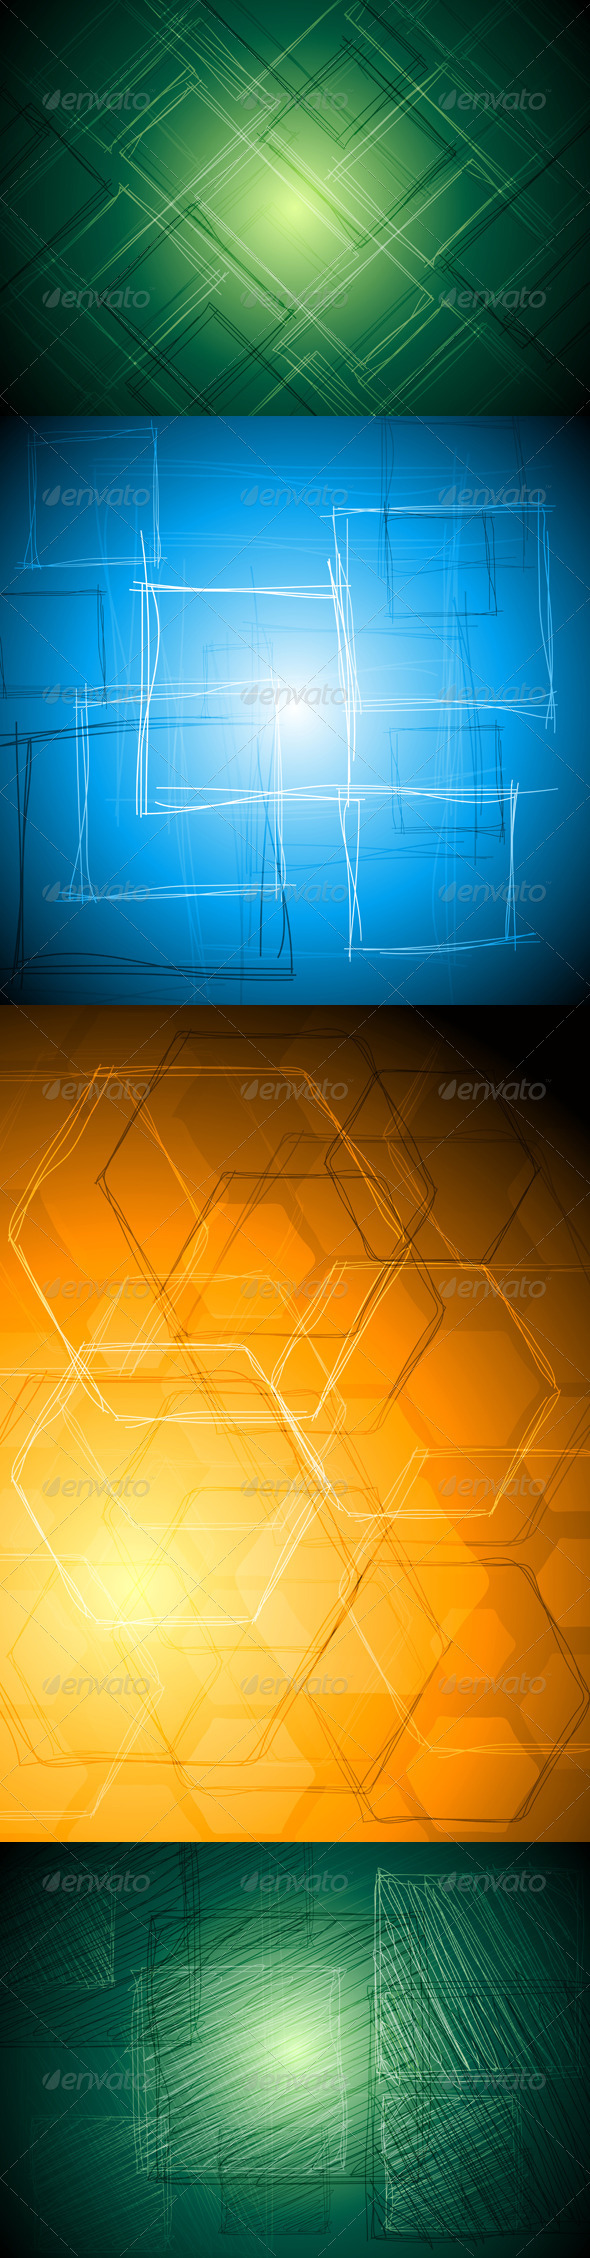 GraphicRiver Abstract Tech Vector Drawing 3543152